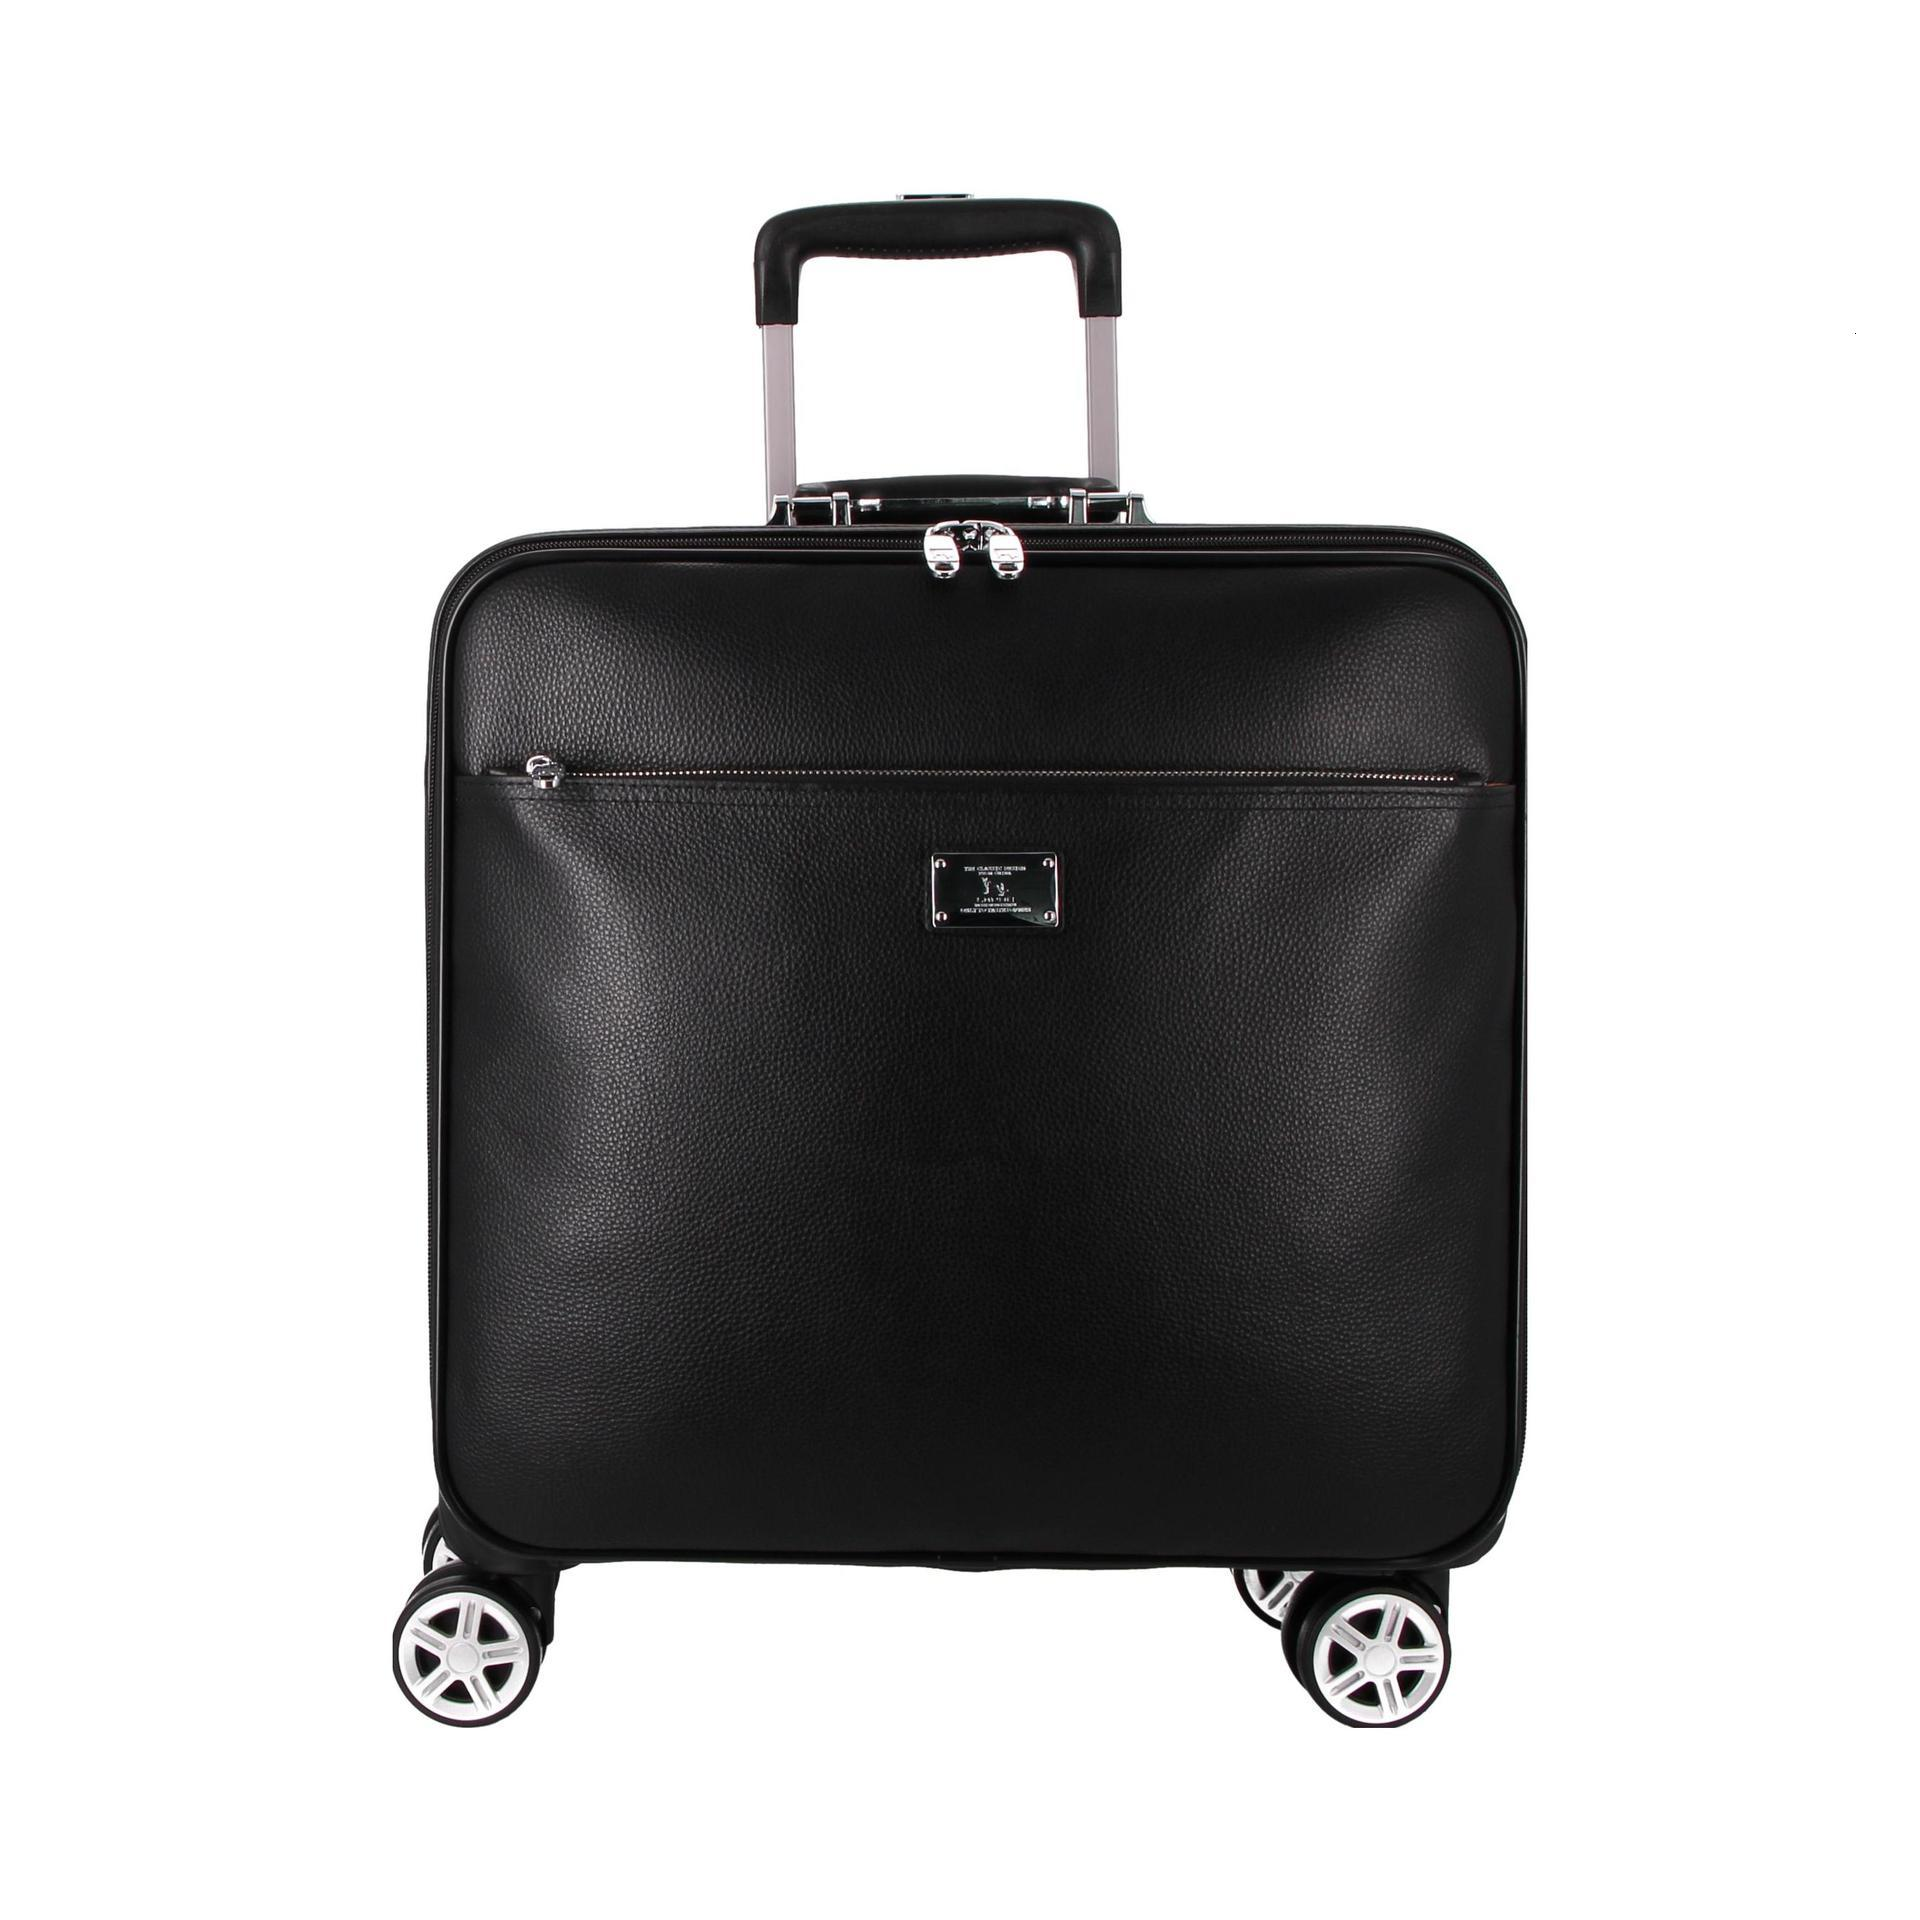 16/20/22inch Real Leather Boarding Box Universal Wheel Trolley Case Portable Luggage High Quality Suitcase Business Valise Bag